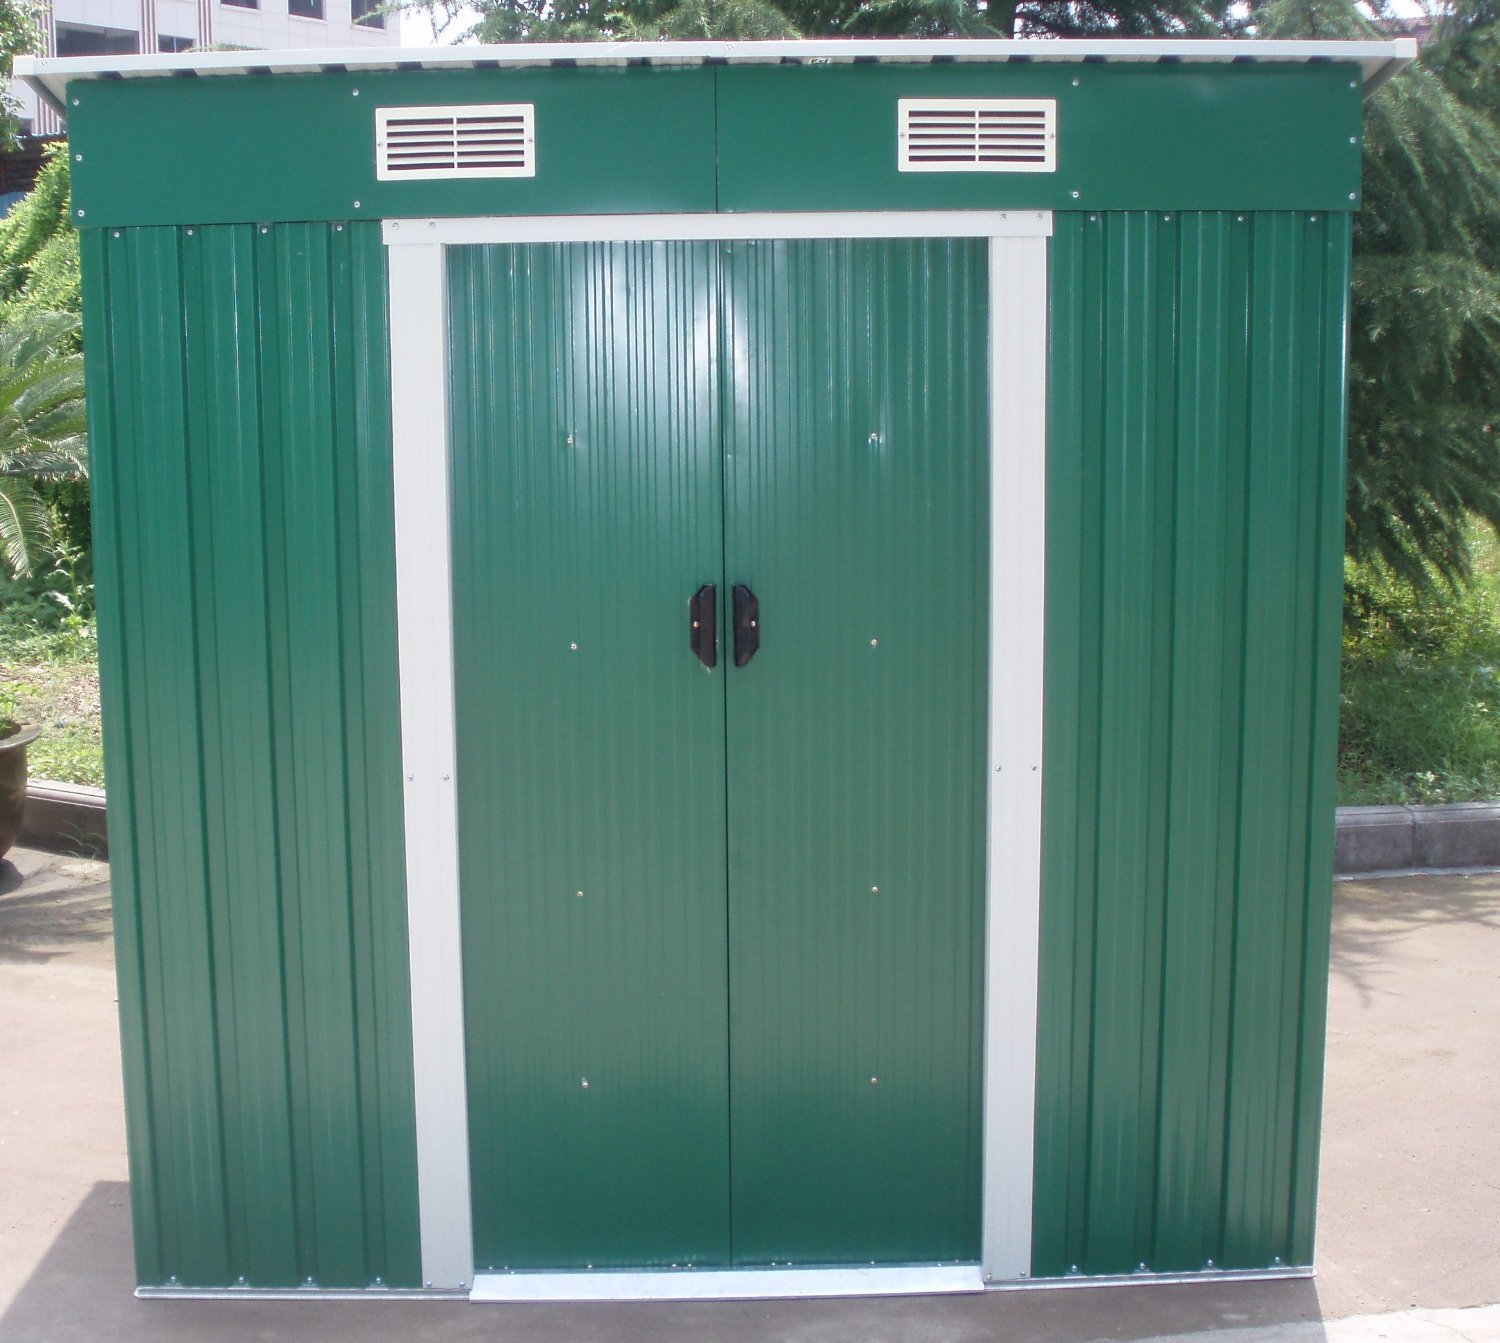 Dirty Pro ToolsTM NEW METAL GARDEN SHED 6 X 4